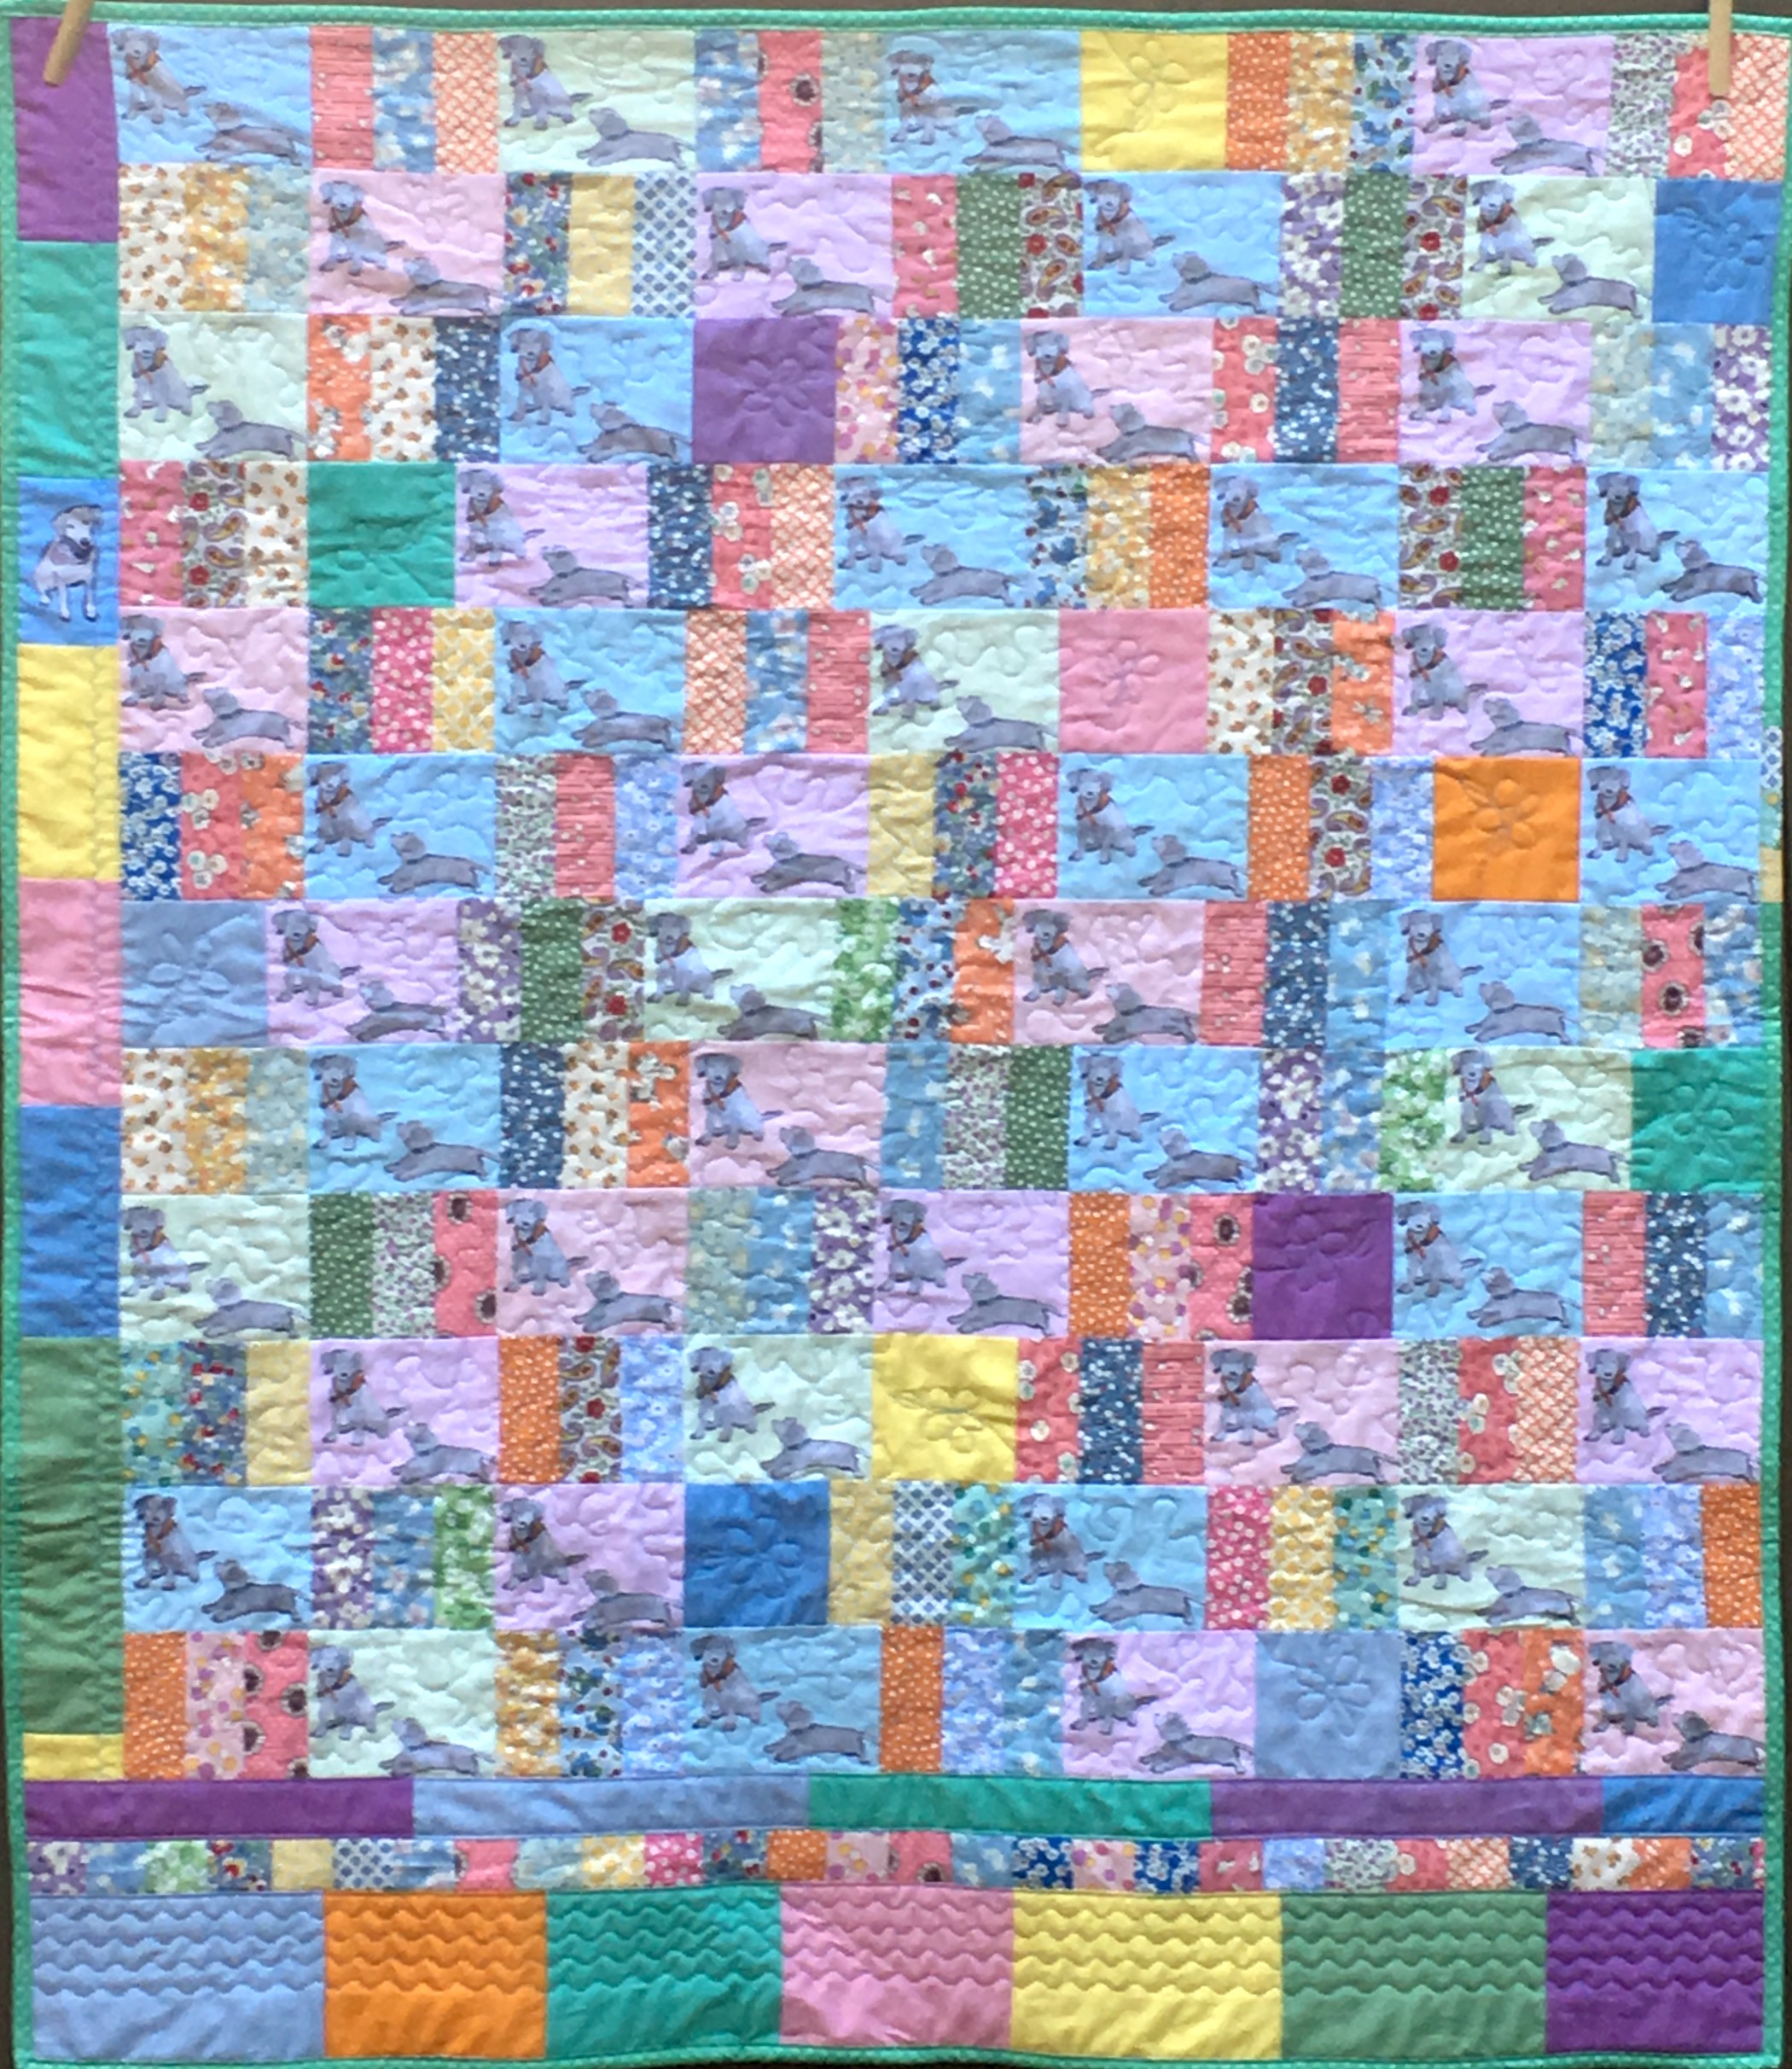 Lab Puppies Quilt, 40 x 45 inches